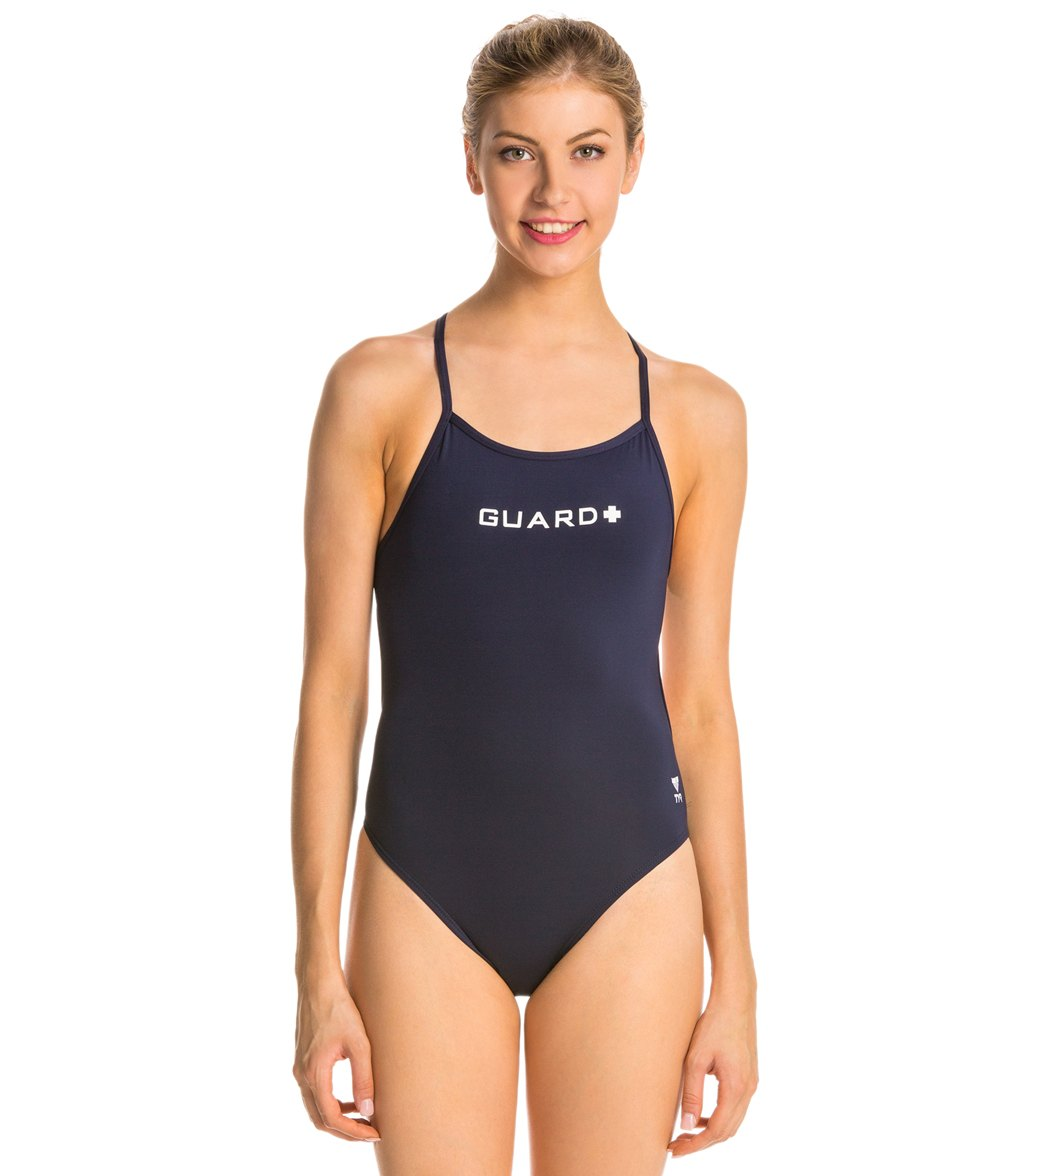 9eca65afce281 TYR LifeLifeguard Durafast Lite Crosscutfit One Piece Swimsuit at  SwimOutlet.com - Free Shipping